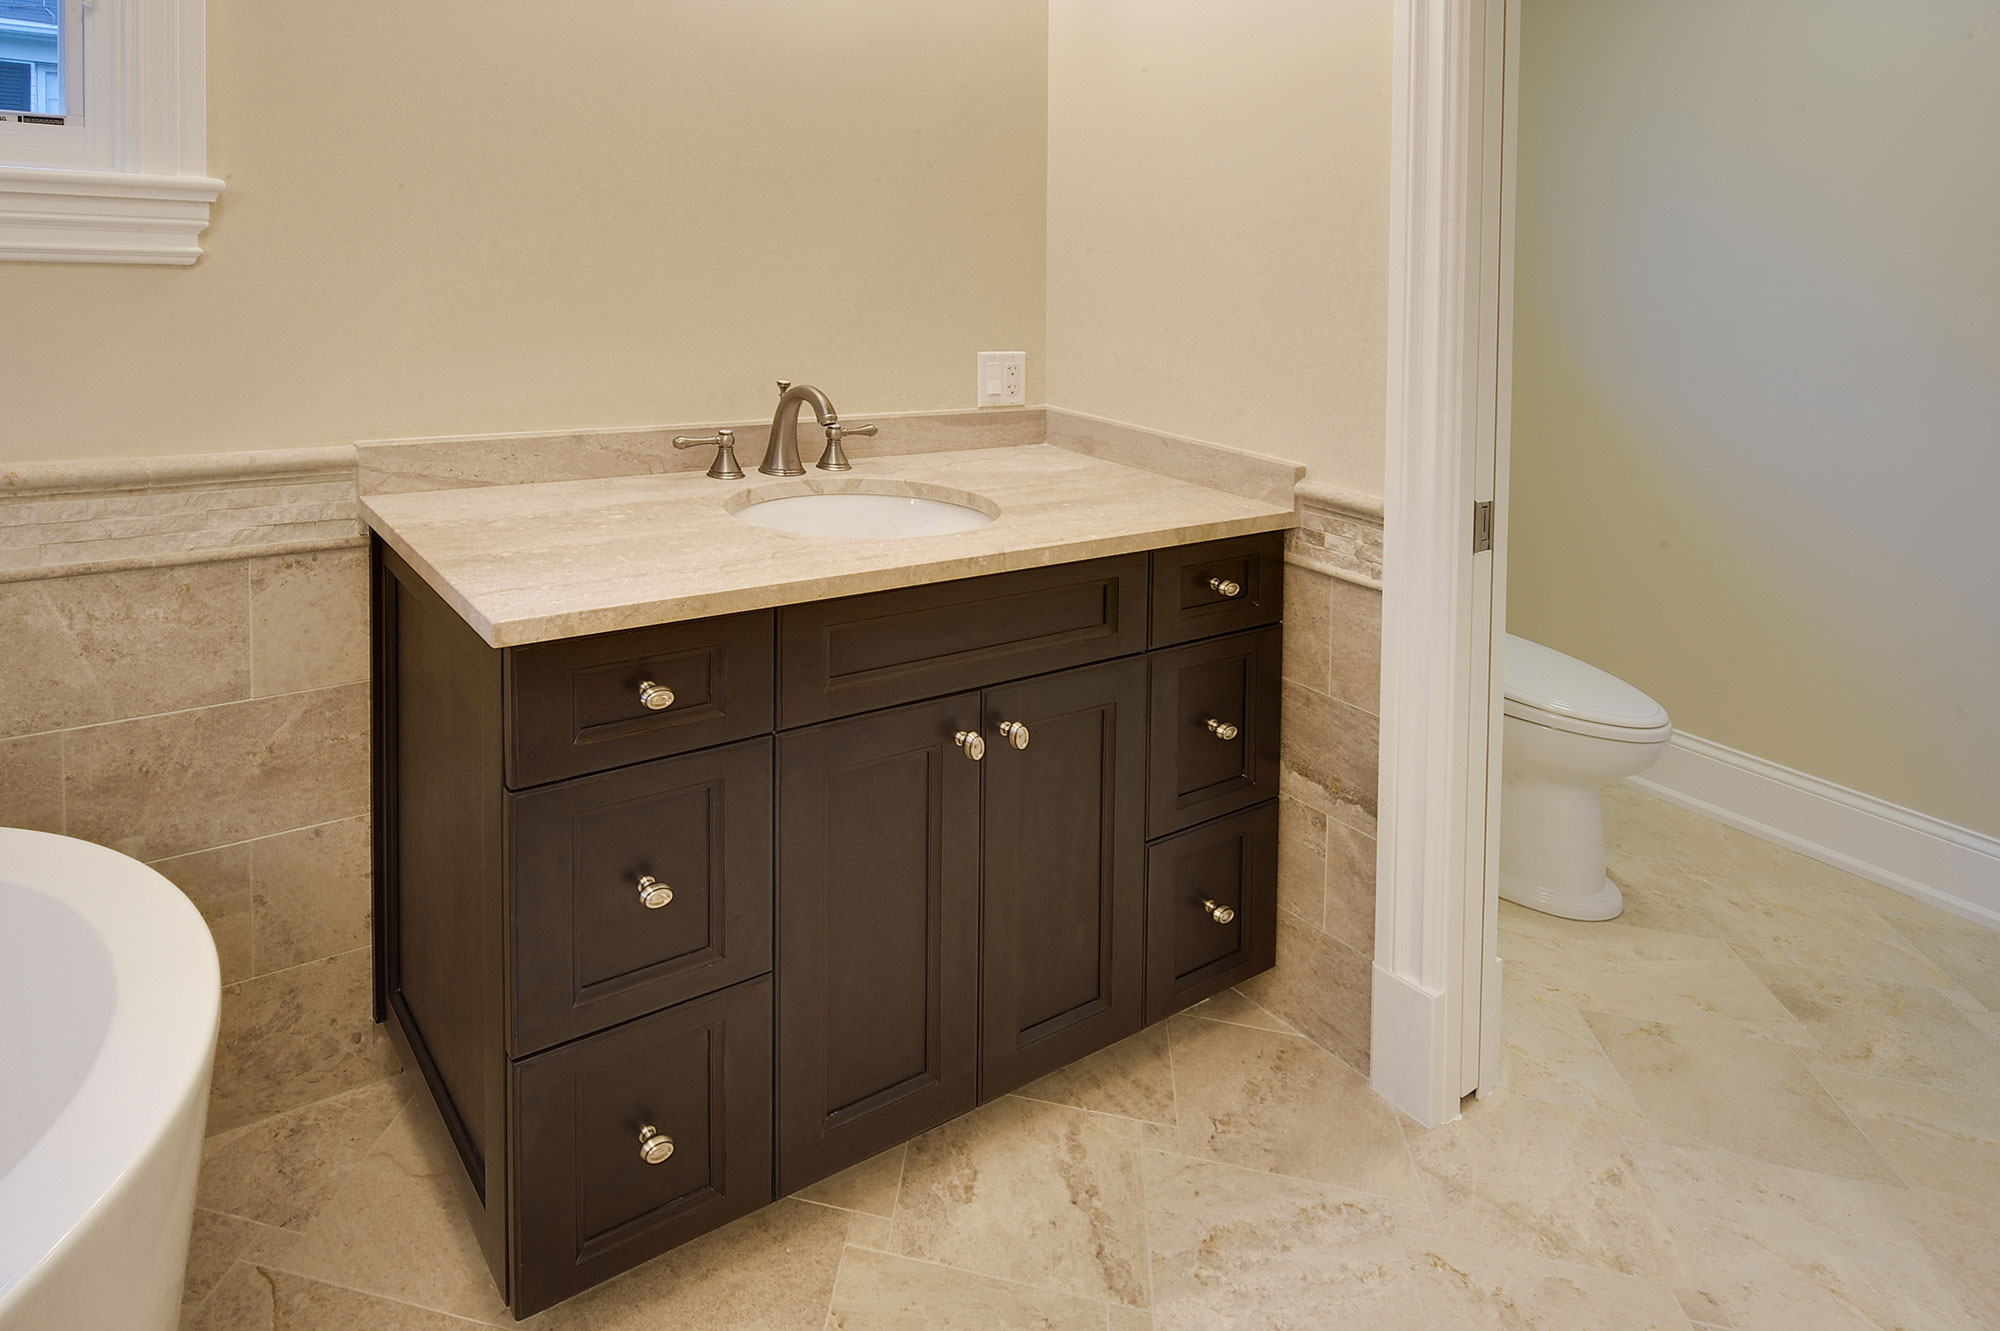 Bathroom Vanity Queens master-bathroom-vanity | new custom homes | globex developments